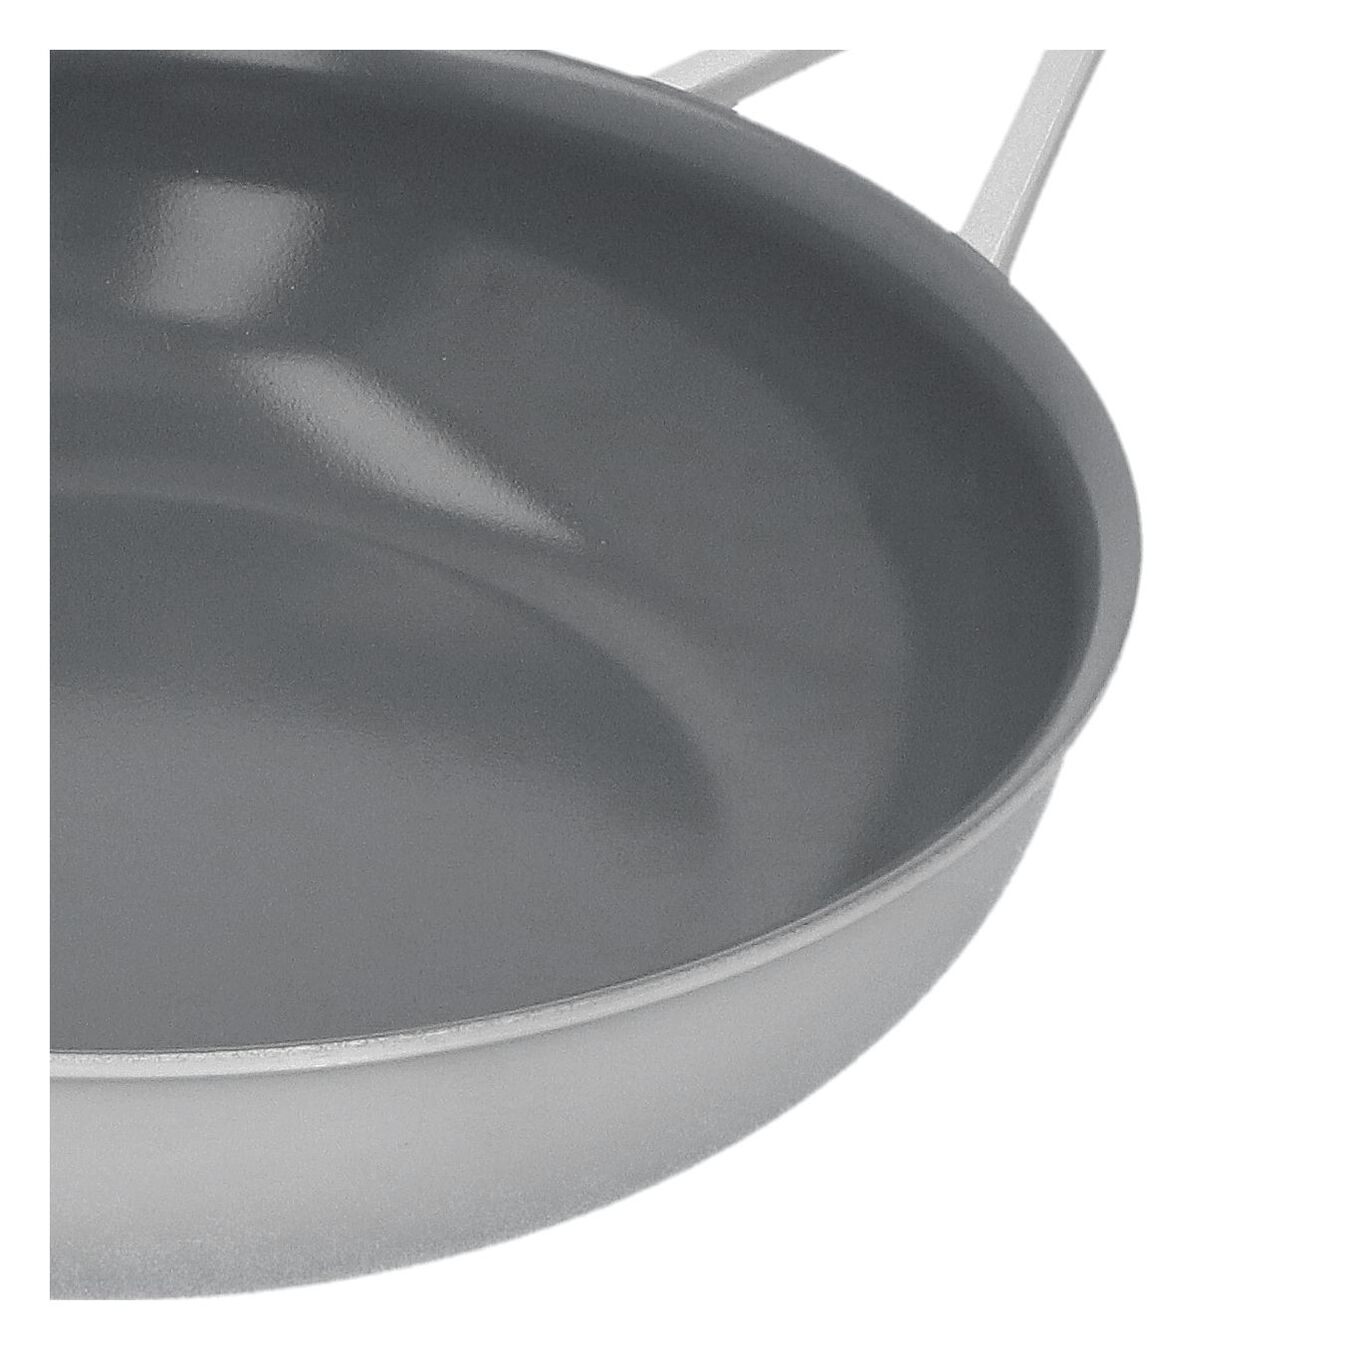 8-inch, 18/10 Stainless Steel, Non-stick, Ceramic, Frying pan,,large 3